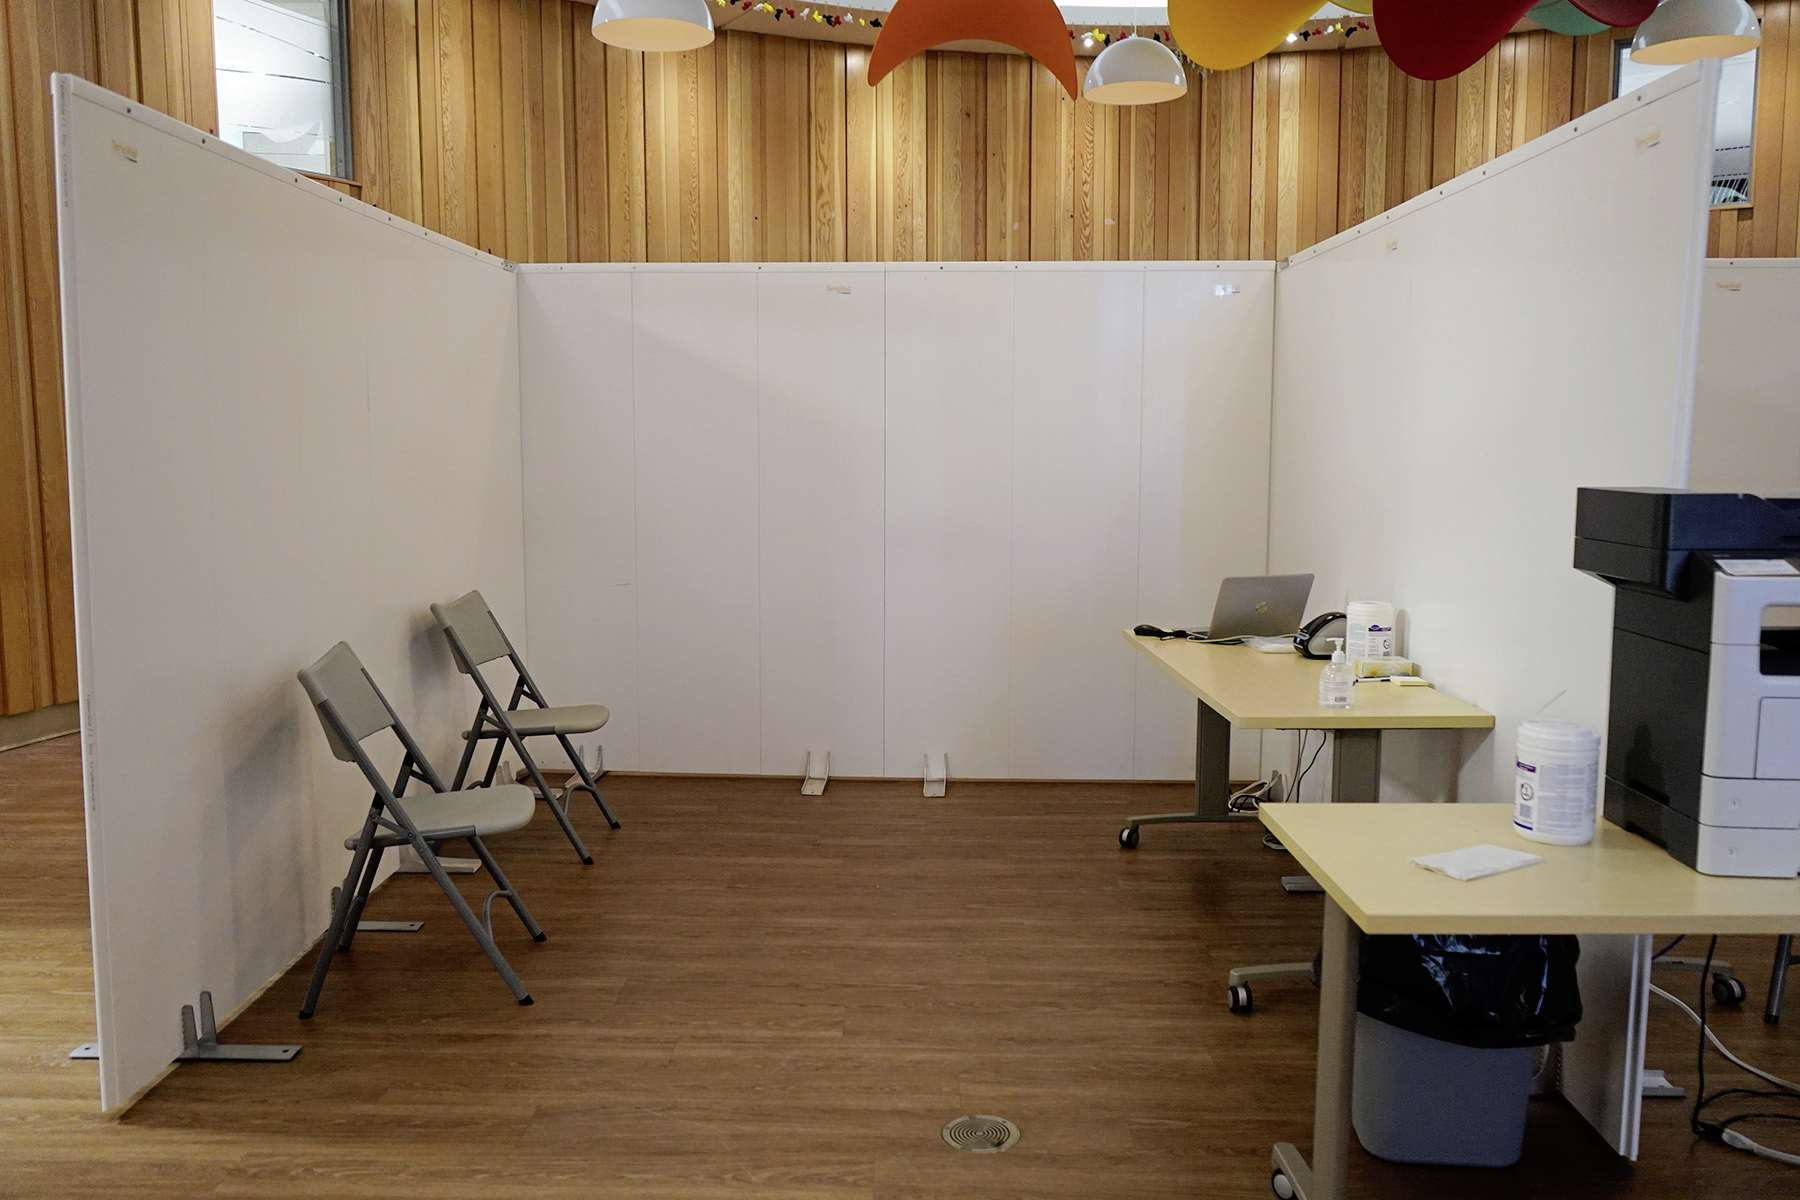 A booth where COVID-19 tests are administered at Ma Mawi Wi Chi Itata Centre at 445 King St.